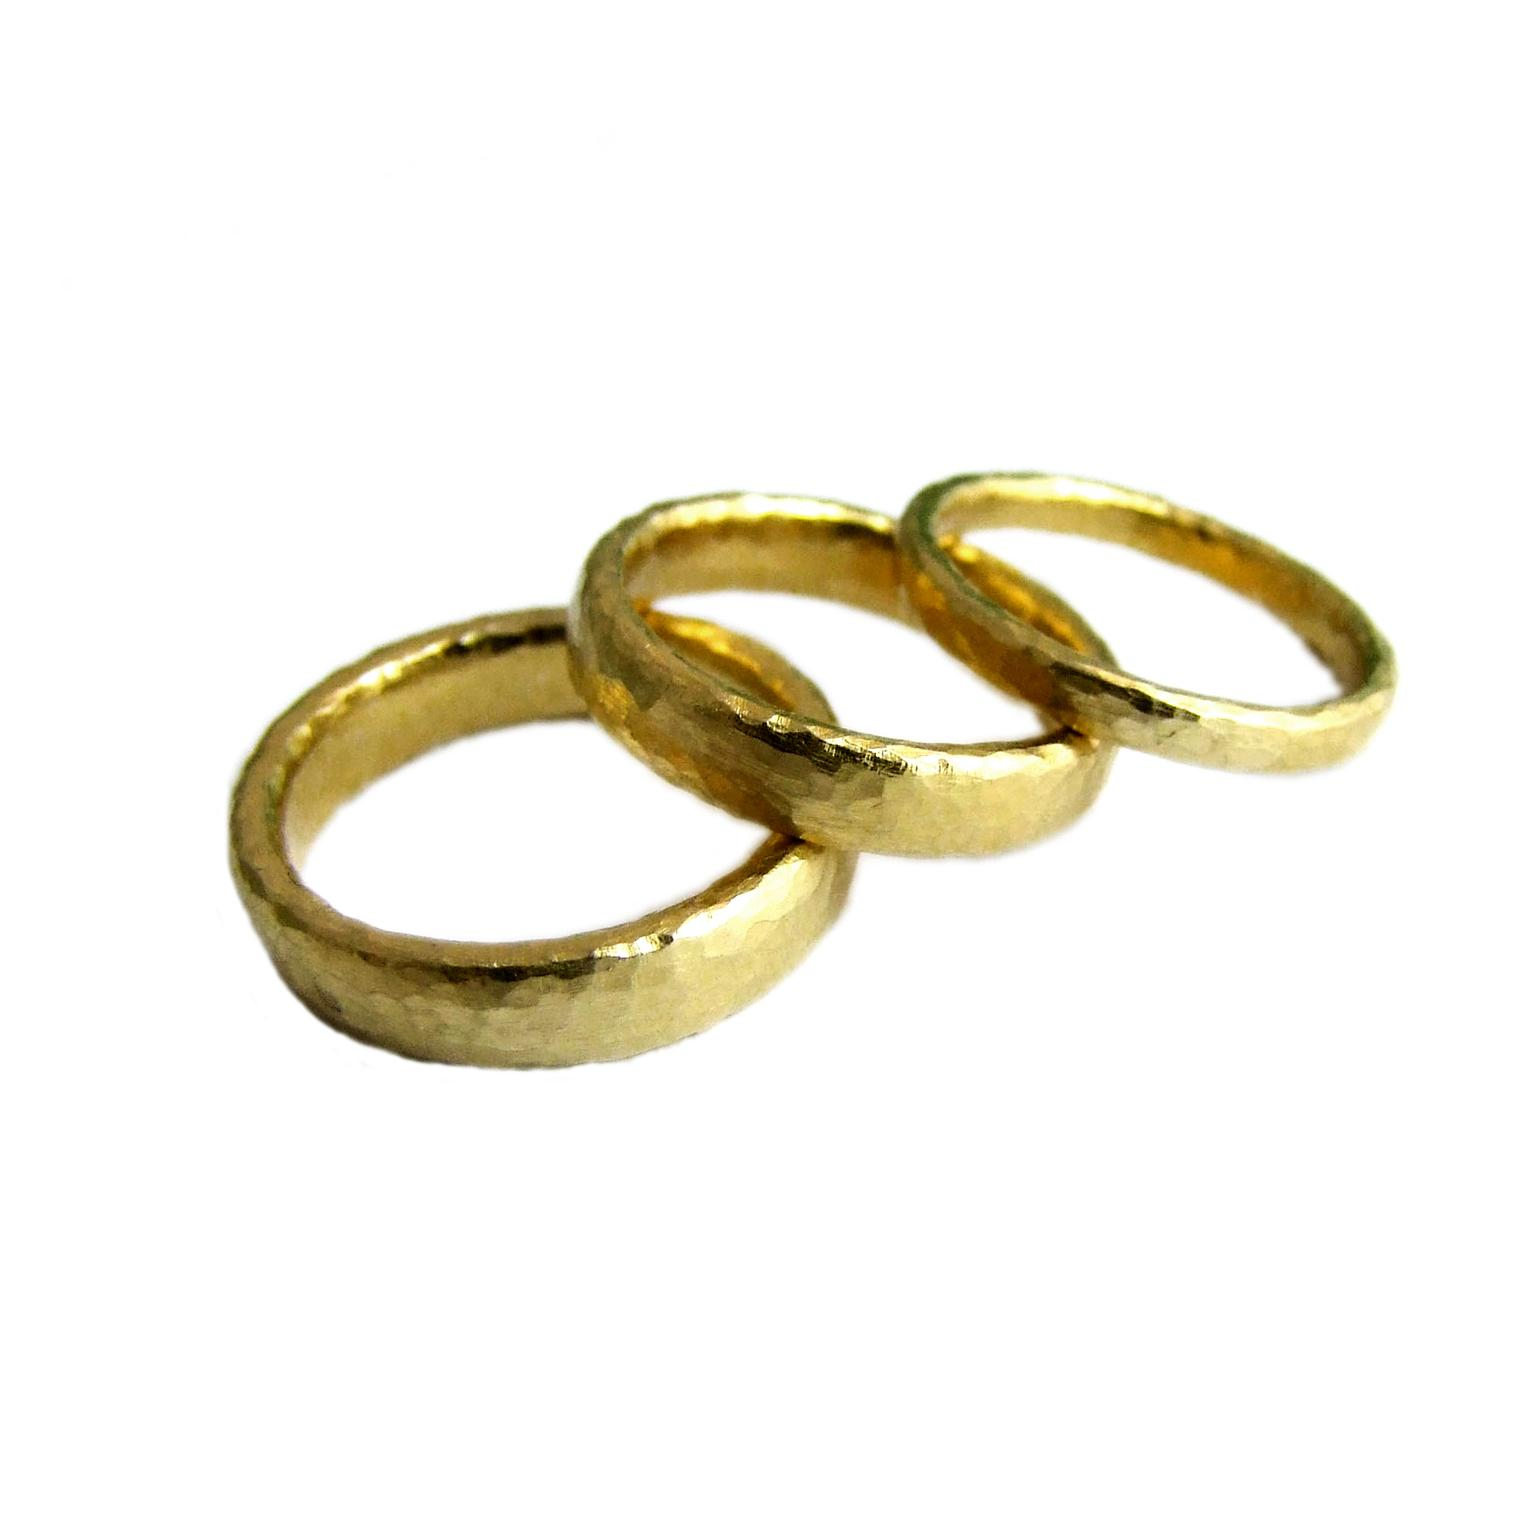 Alexis Dove yellow gold wedding bands